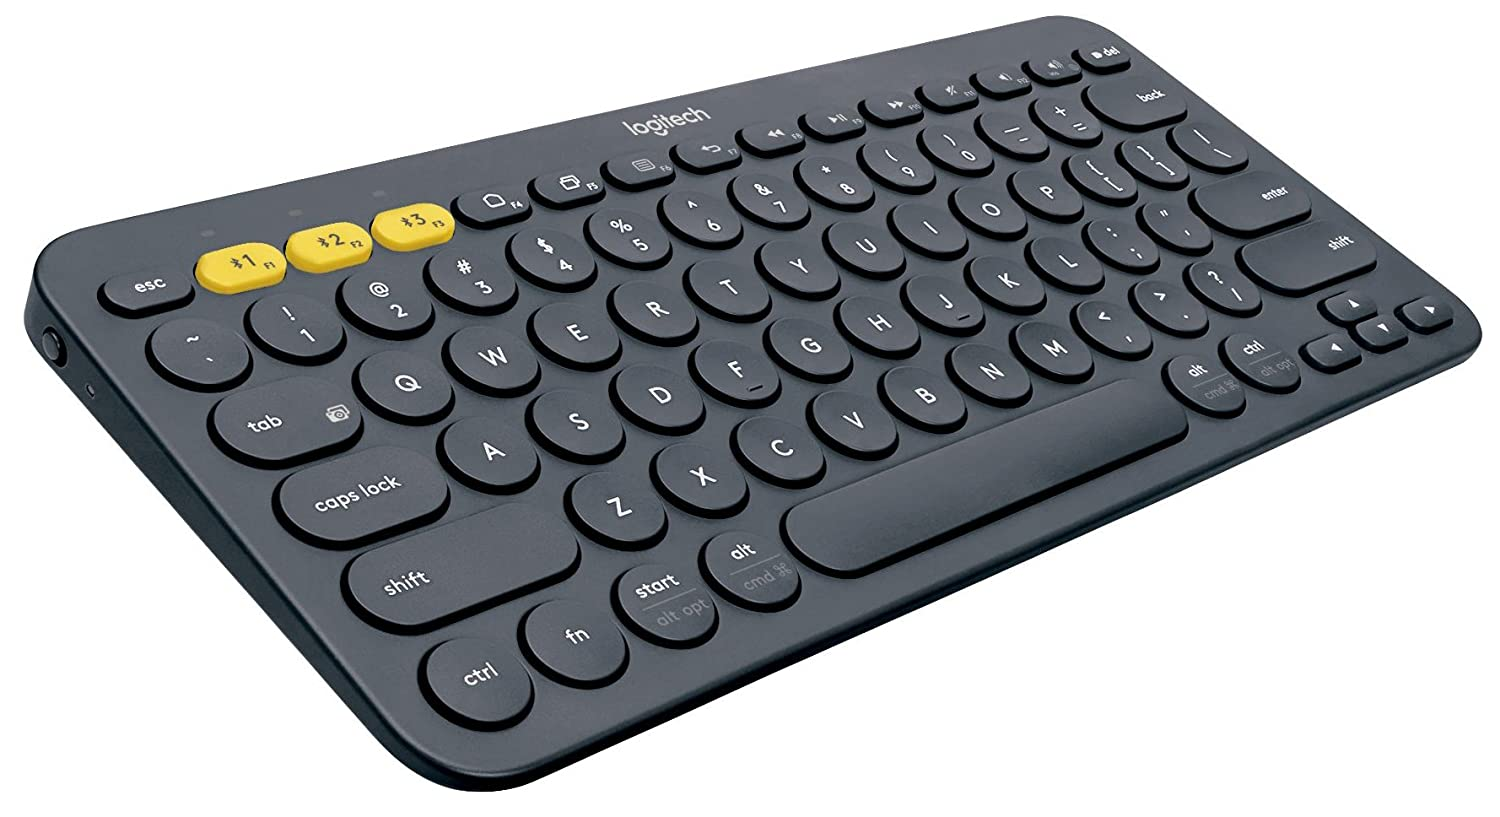 Logitech K380 Multi-Device Blutooth Keyboard,Dark gray